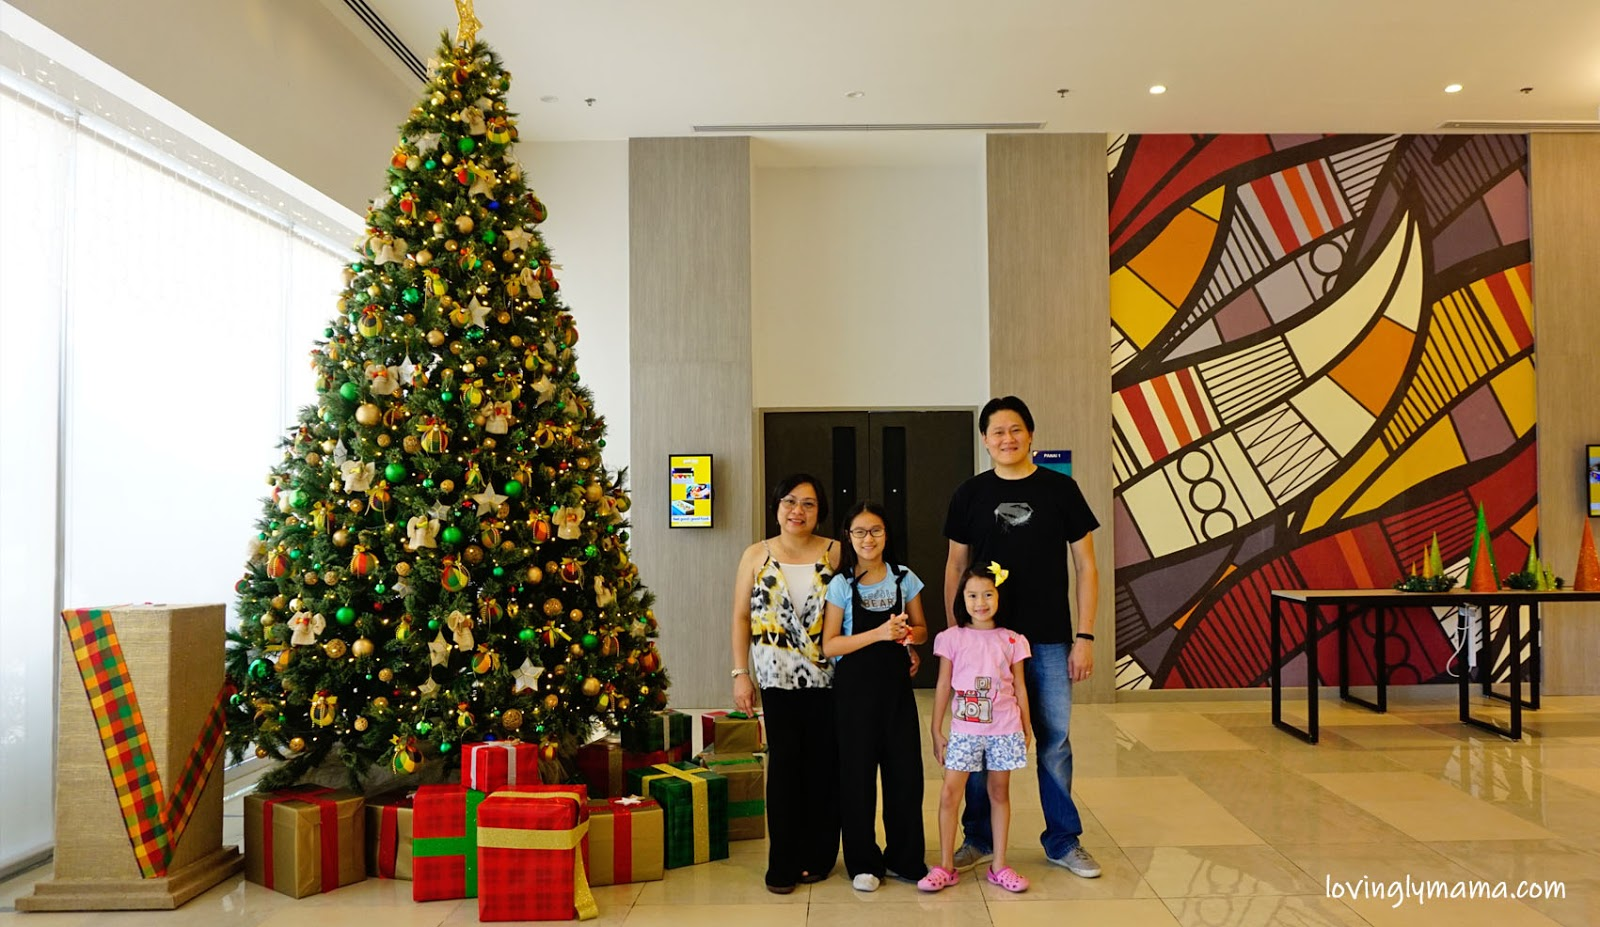 Park Inn by Radisson Iloilo, Iloilo City, Iloilo hotel, Christmas, Christmas tree, Christmas decors, hablon, Miag-ao, Christmas staycation, hotel stay, Park Inn by Radisson Iloilo room rates, Park Inn by Radisson Iloilo promo, Capiz shells, Philippine handicraft, Balai Hablon, Chef Vance Bolivar, SOS Children's Village Iloilo, Capiz Parol, Sooc Social Ventures Inc, Bacolod City, Sig-id balls, Capiz stars, Capiz Parol - Bacolod blogger- family travel - Bacolod mommy blogger